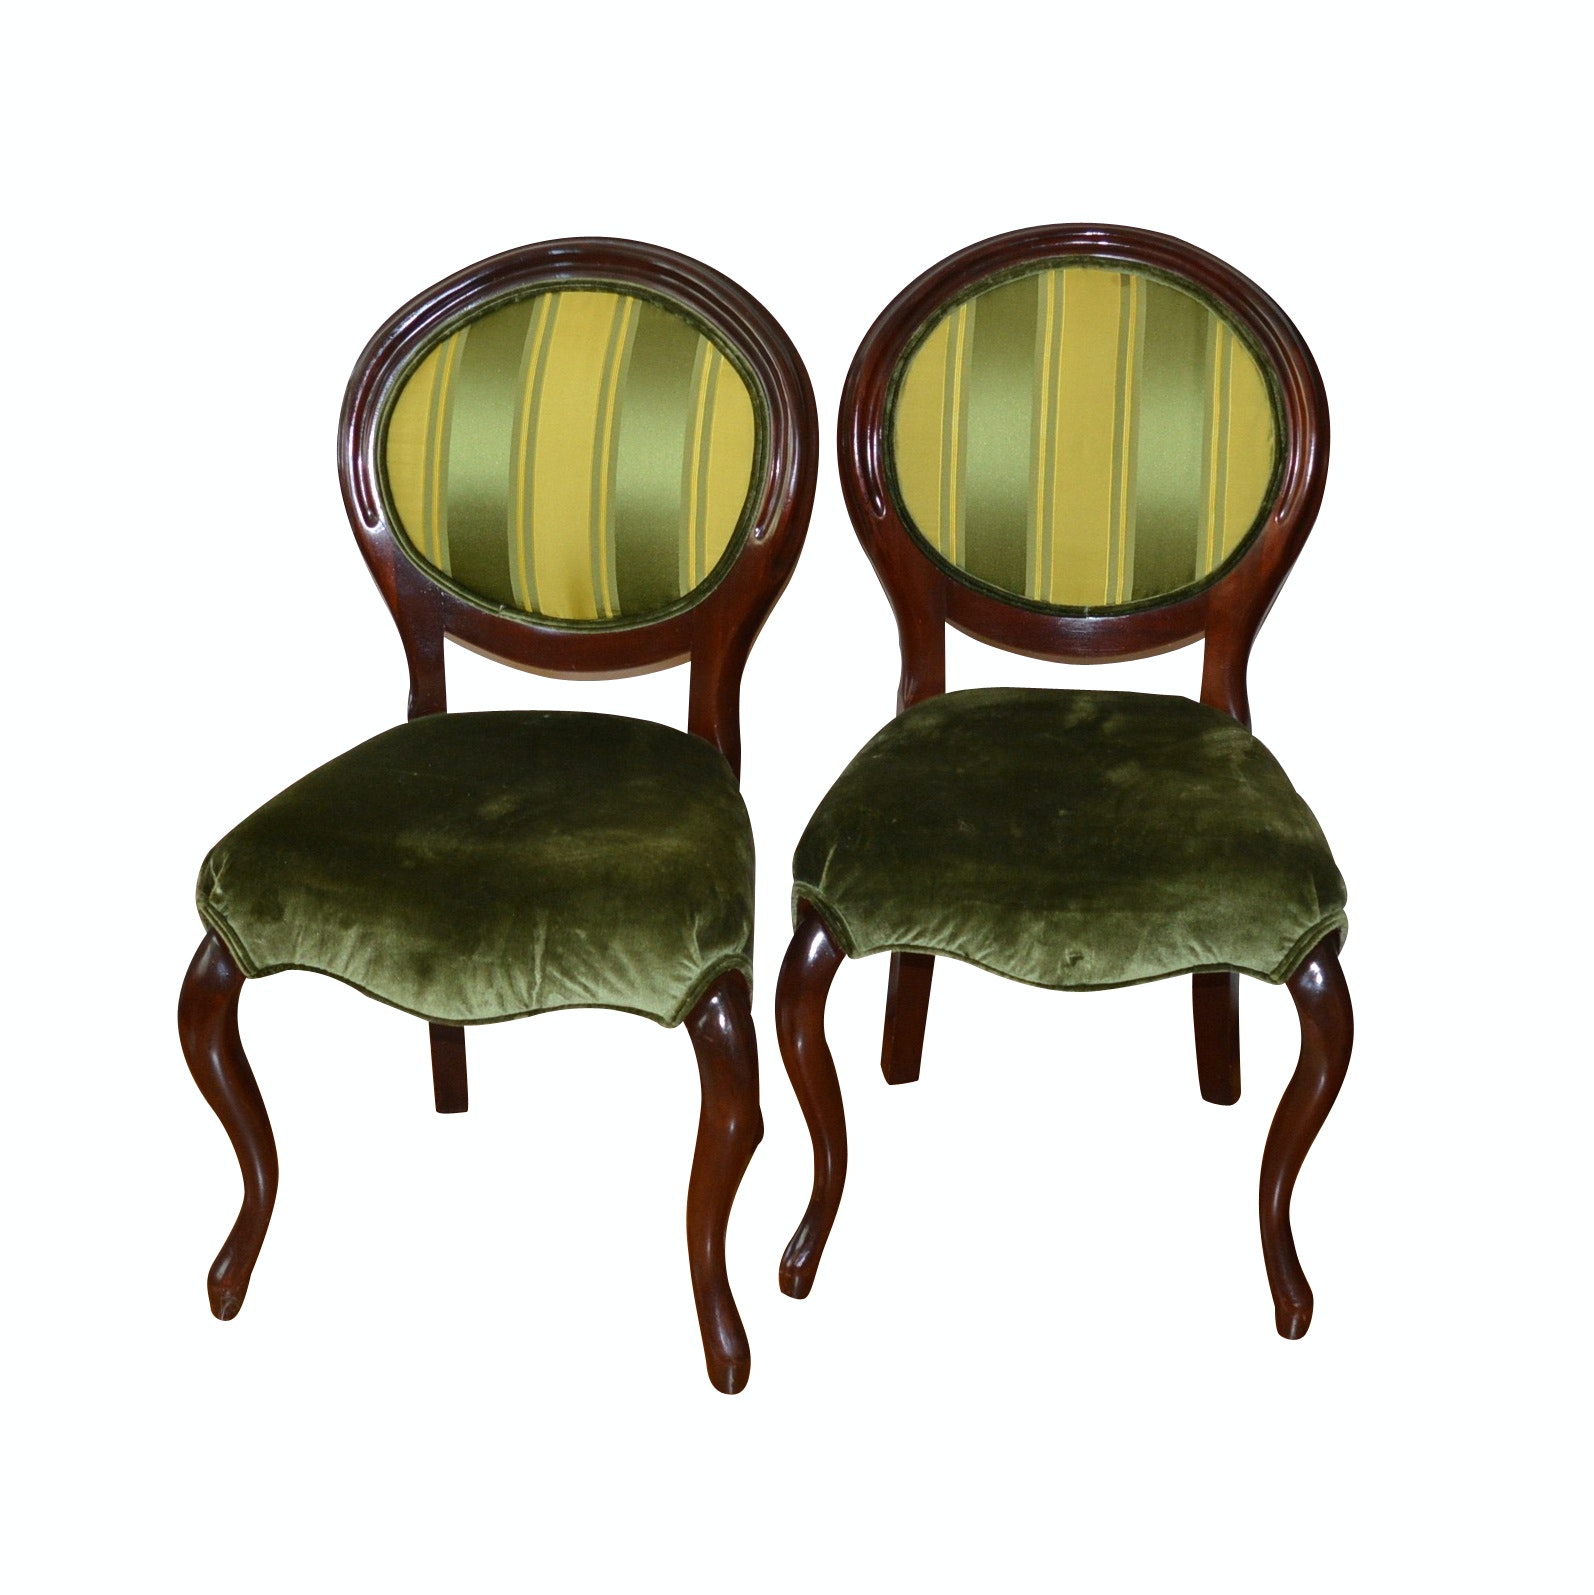 Pair of Antique Balloon Back Chairs with Scalamandre Silk and Velvet Fabric